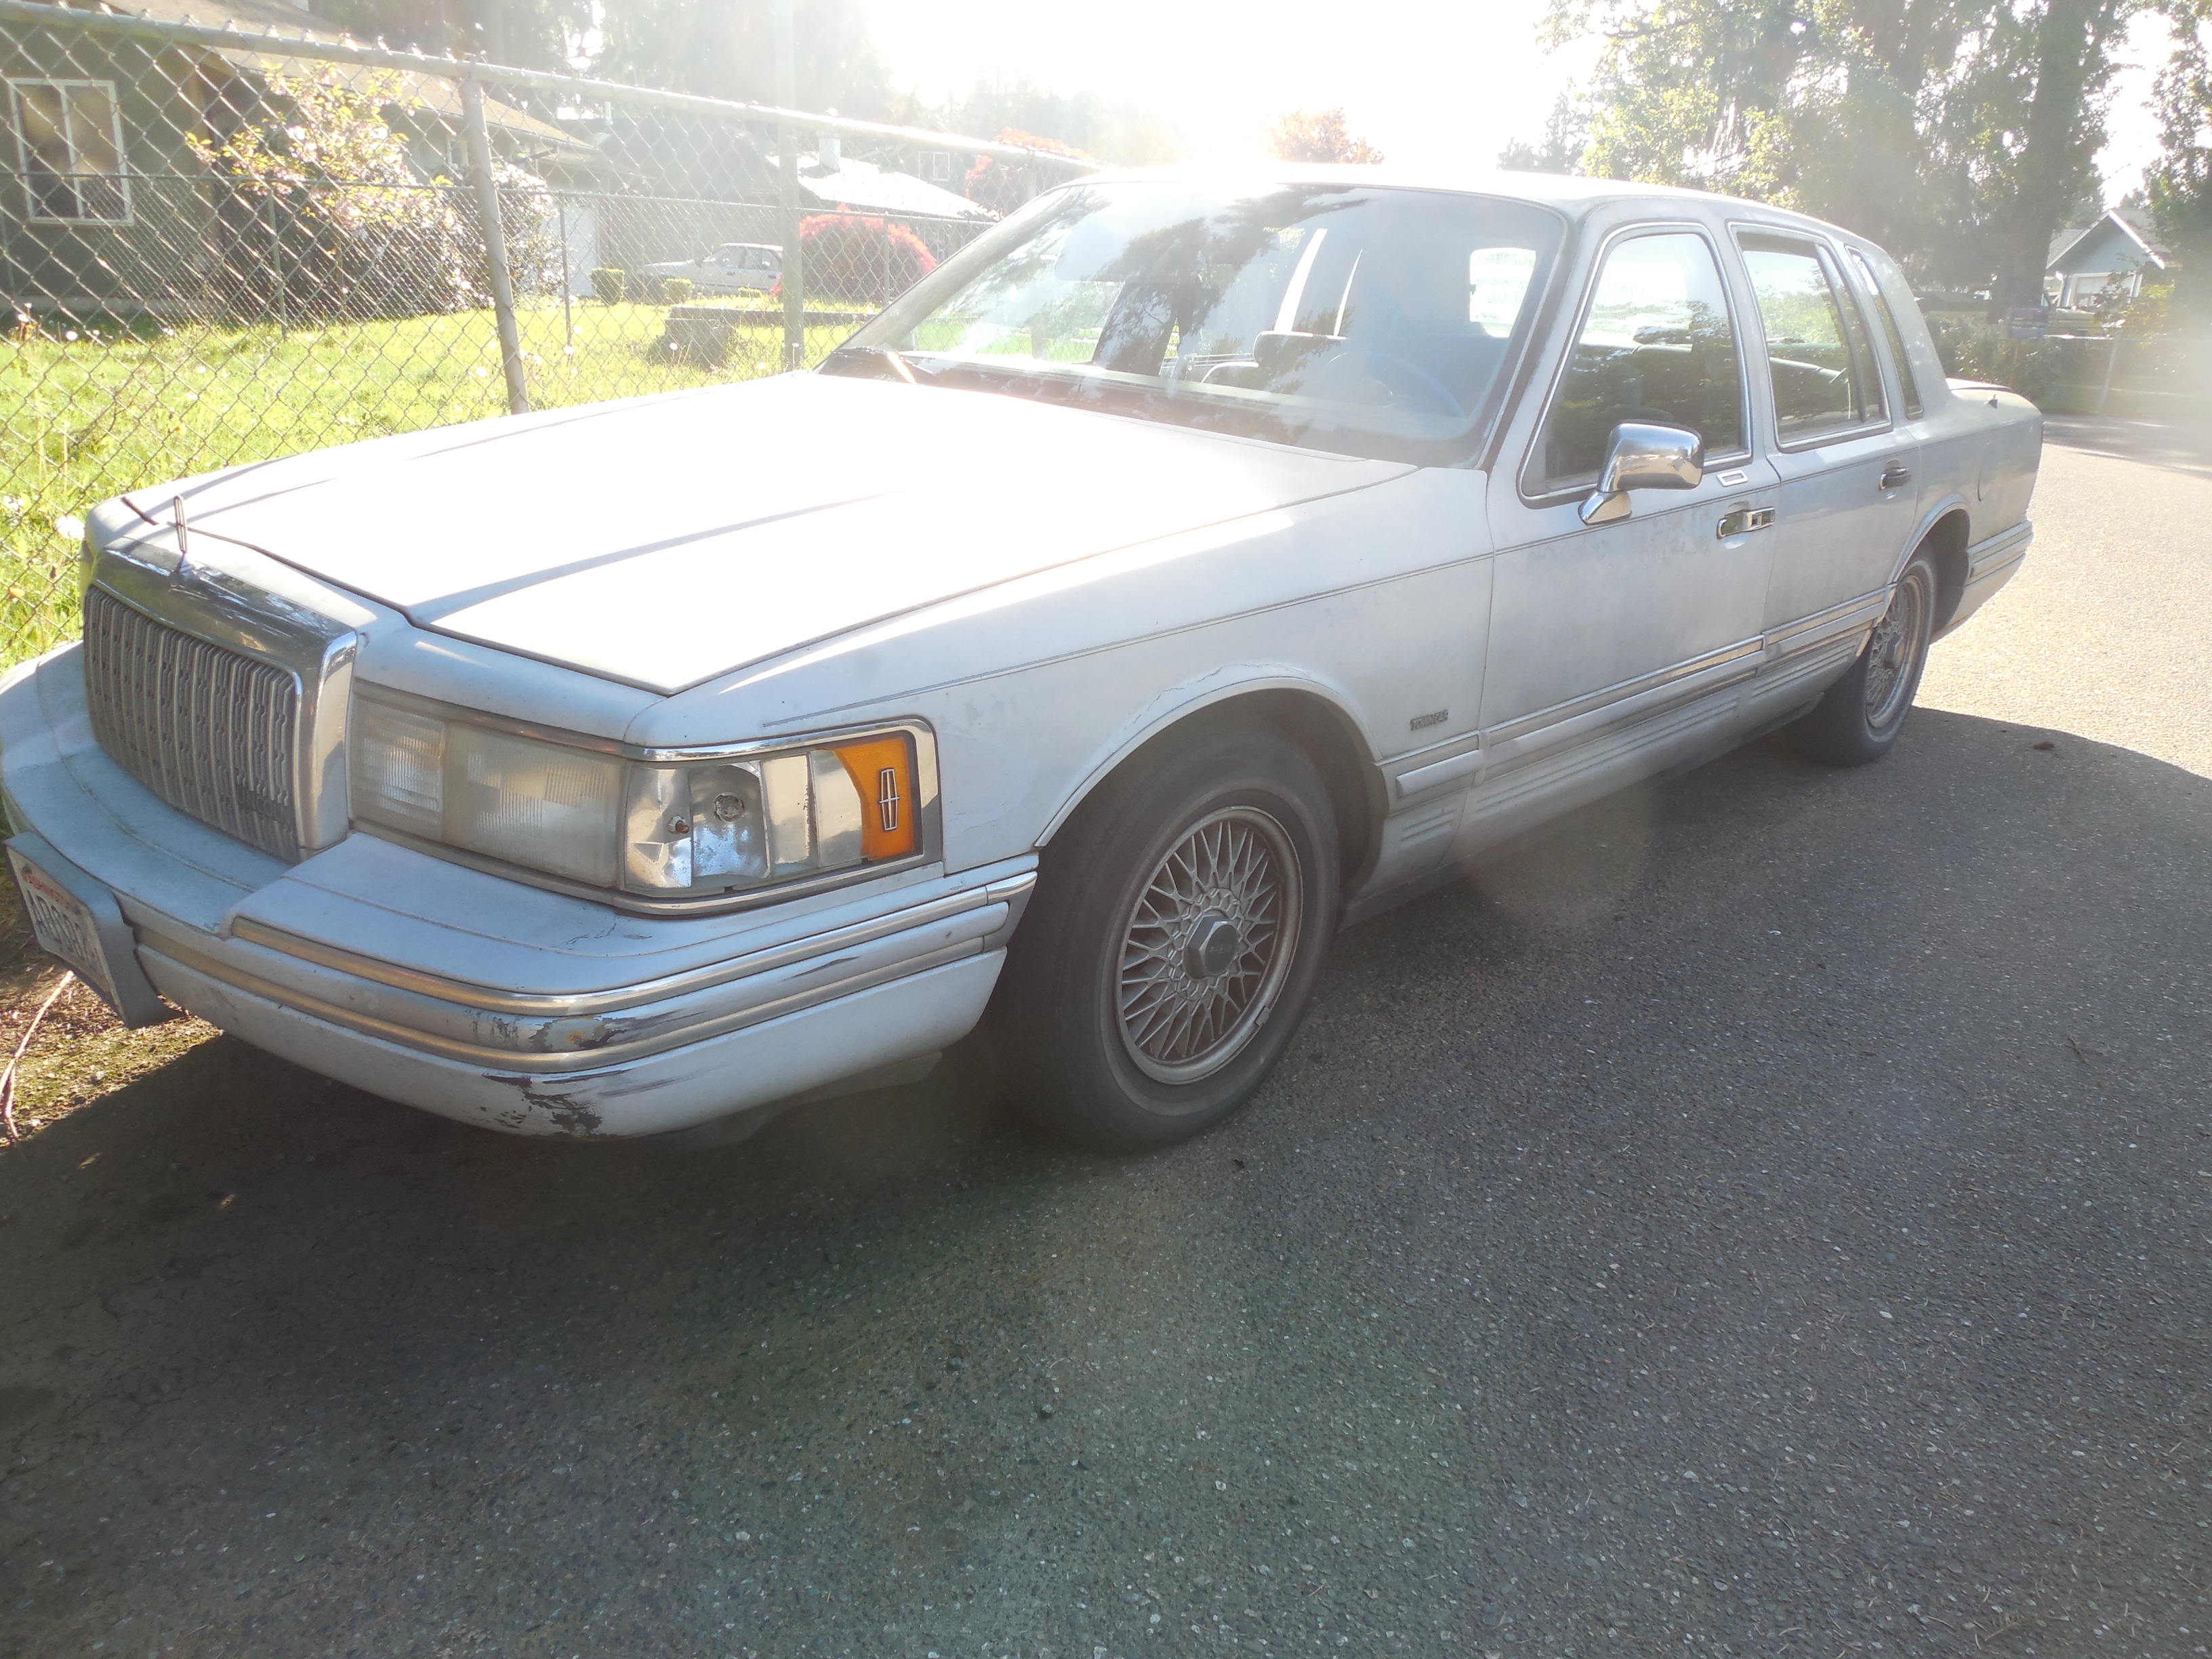 Cash for Cars Yonkers, NY   Sell Your Junk Car   The Clunker Junker